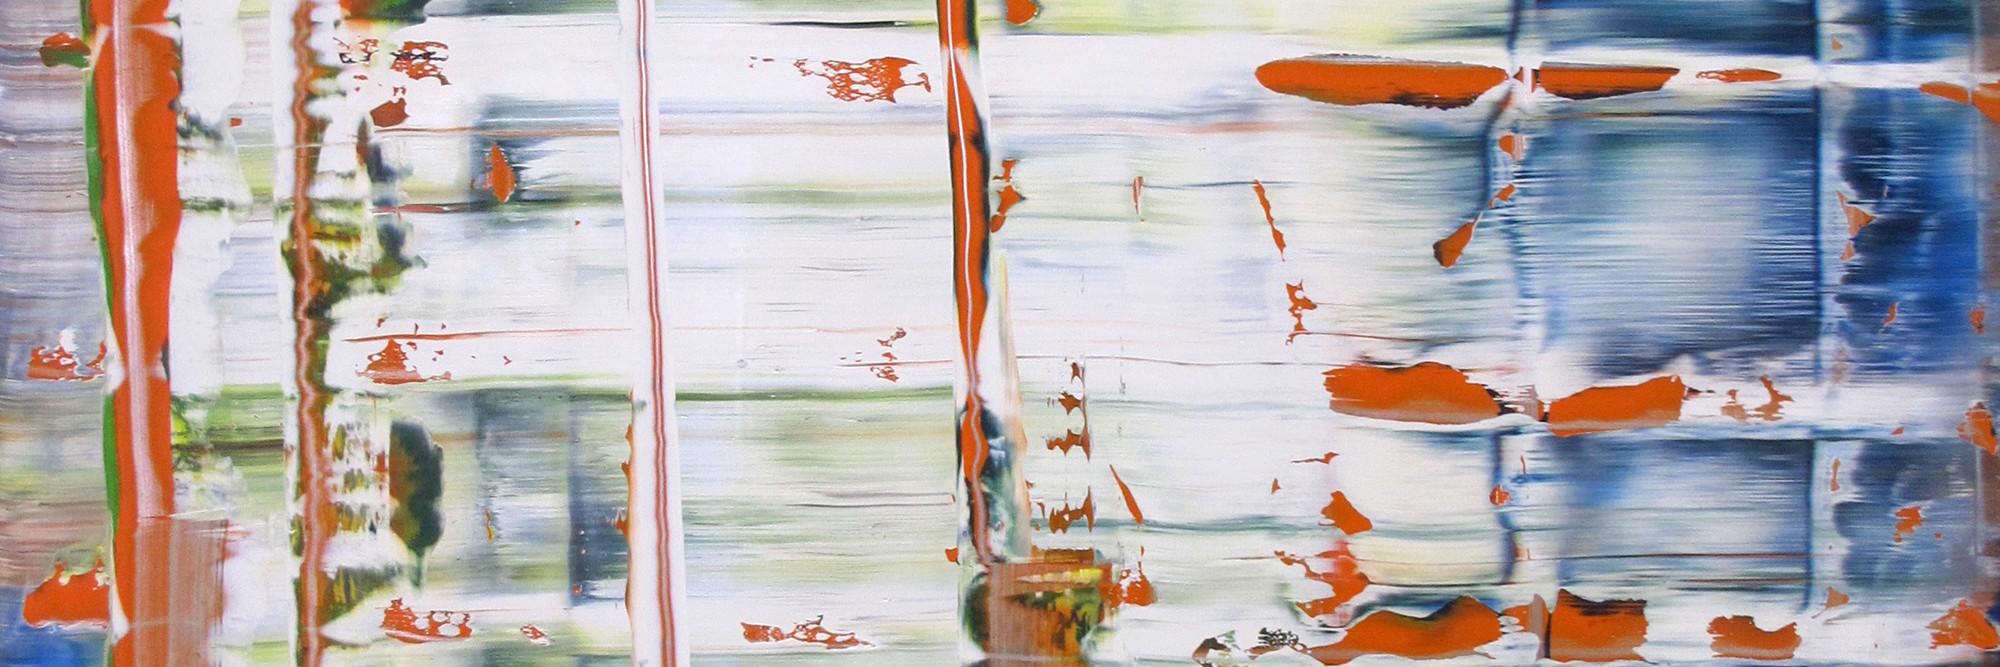 Gerhard Richter. Abstract Picture (Abstraktes Bild). 1992. Oil on aluminum panel, 39 1/2 × 39 1/2″ (100 × 100 cm). Private Collection